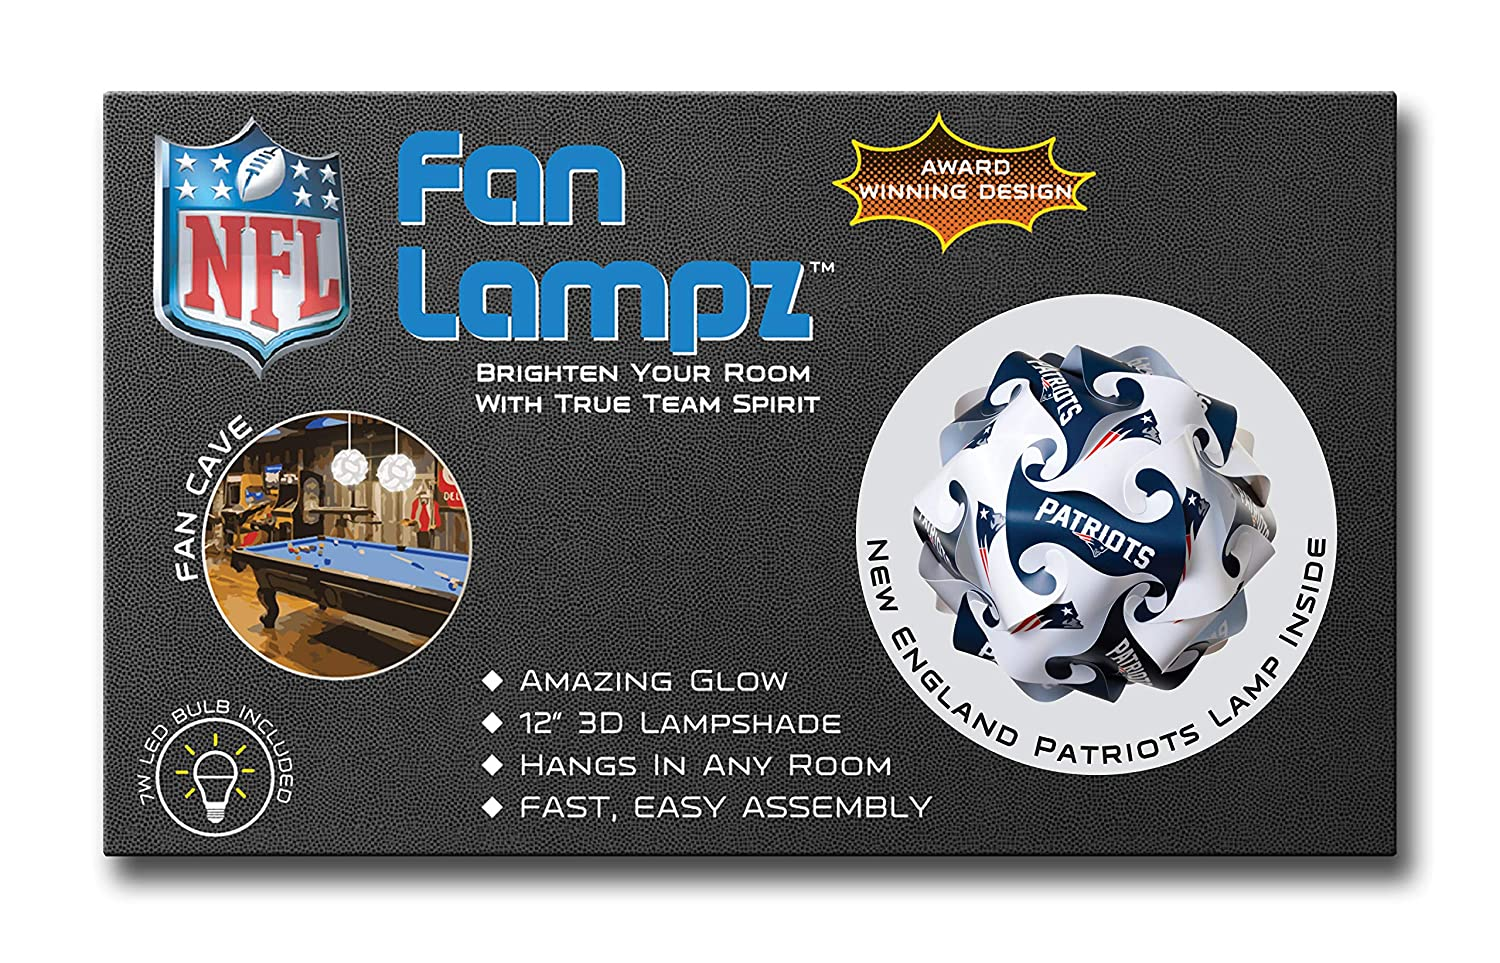 Man Caves Garages FanLampz Original Self-Assembly Lighting System for Patios NFL Officially Licensed Item